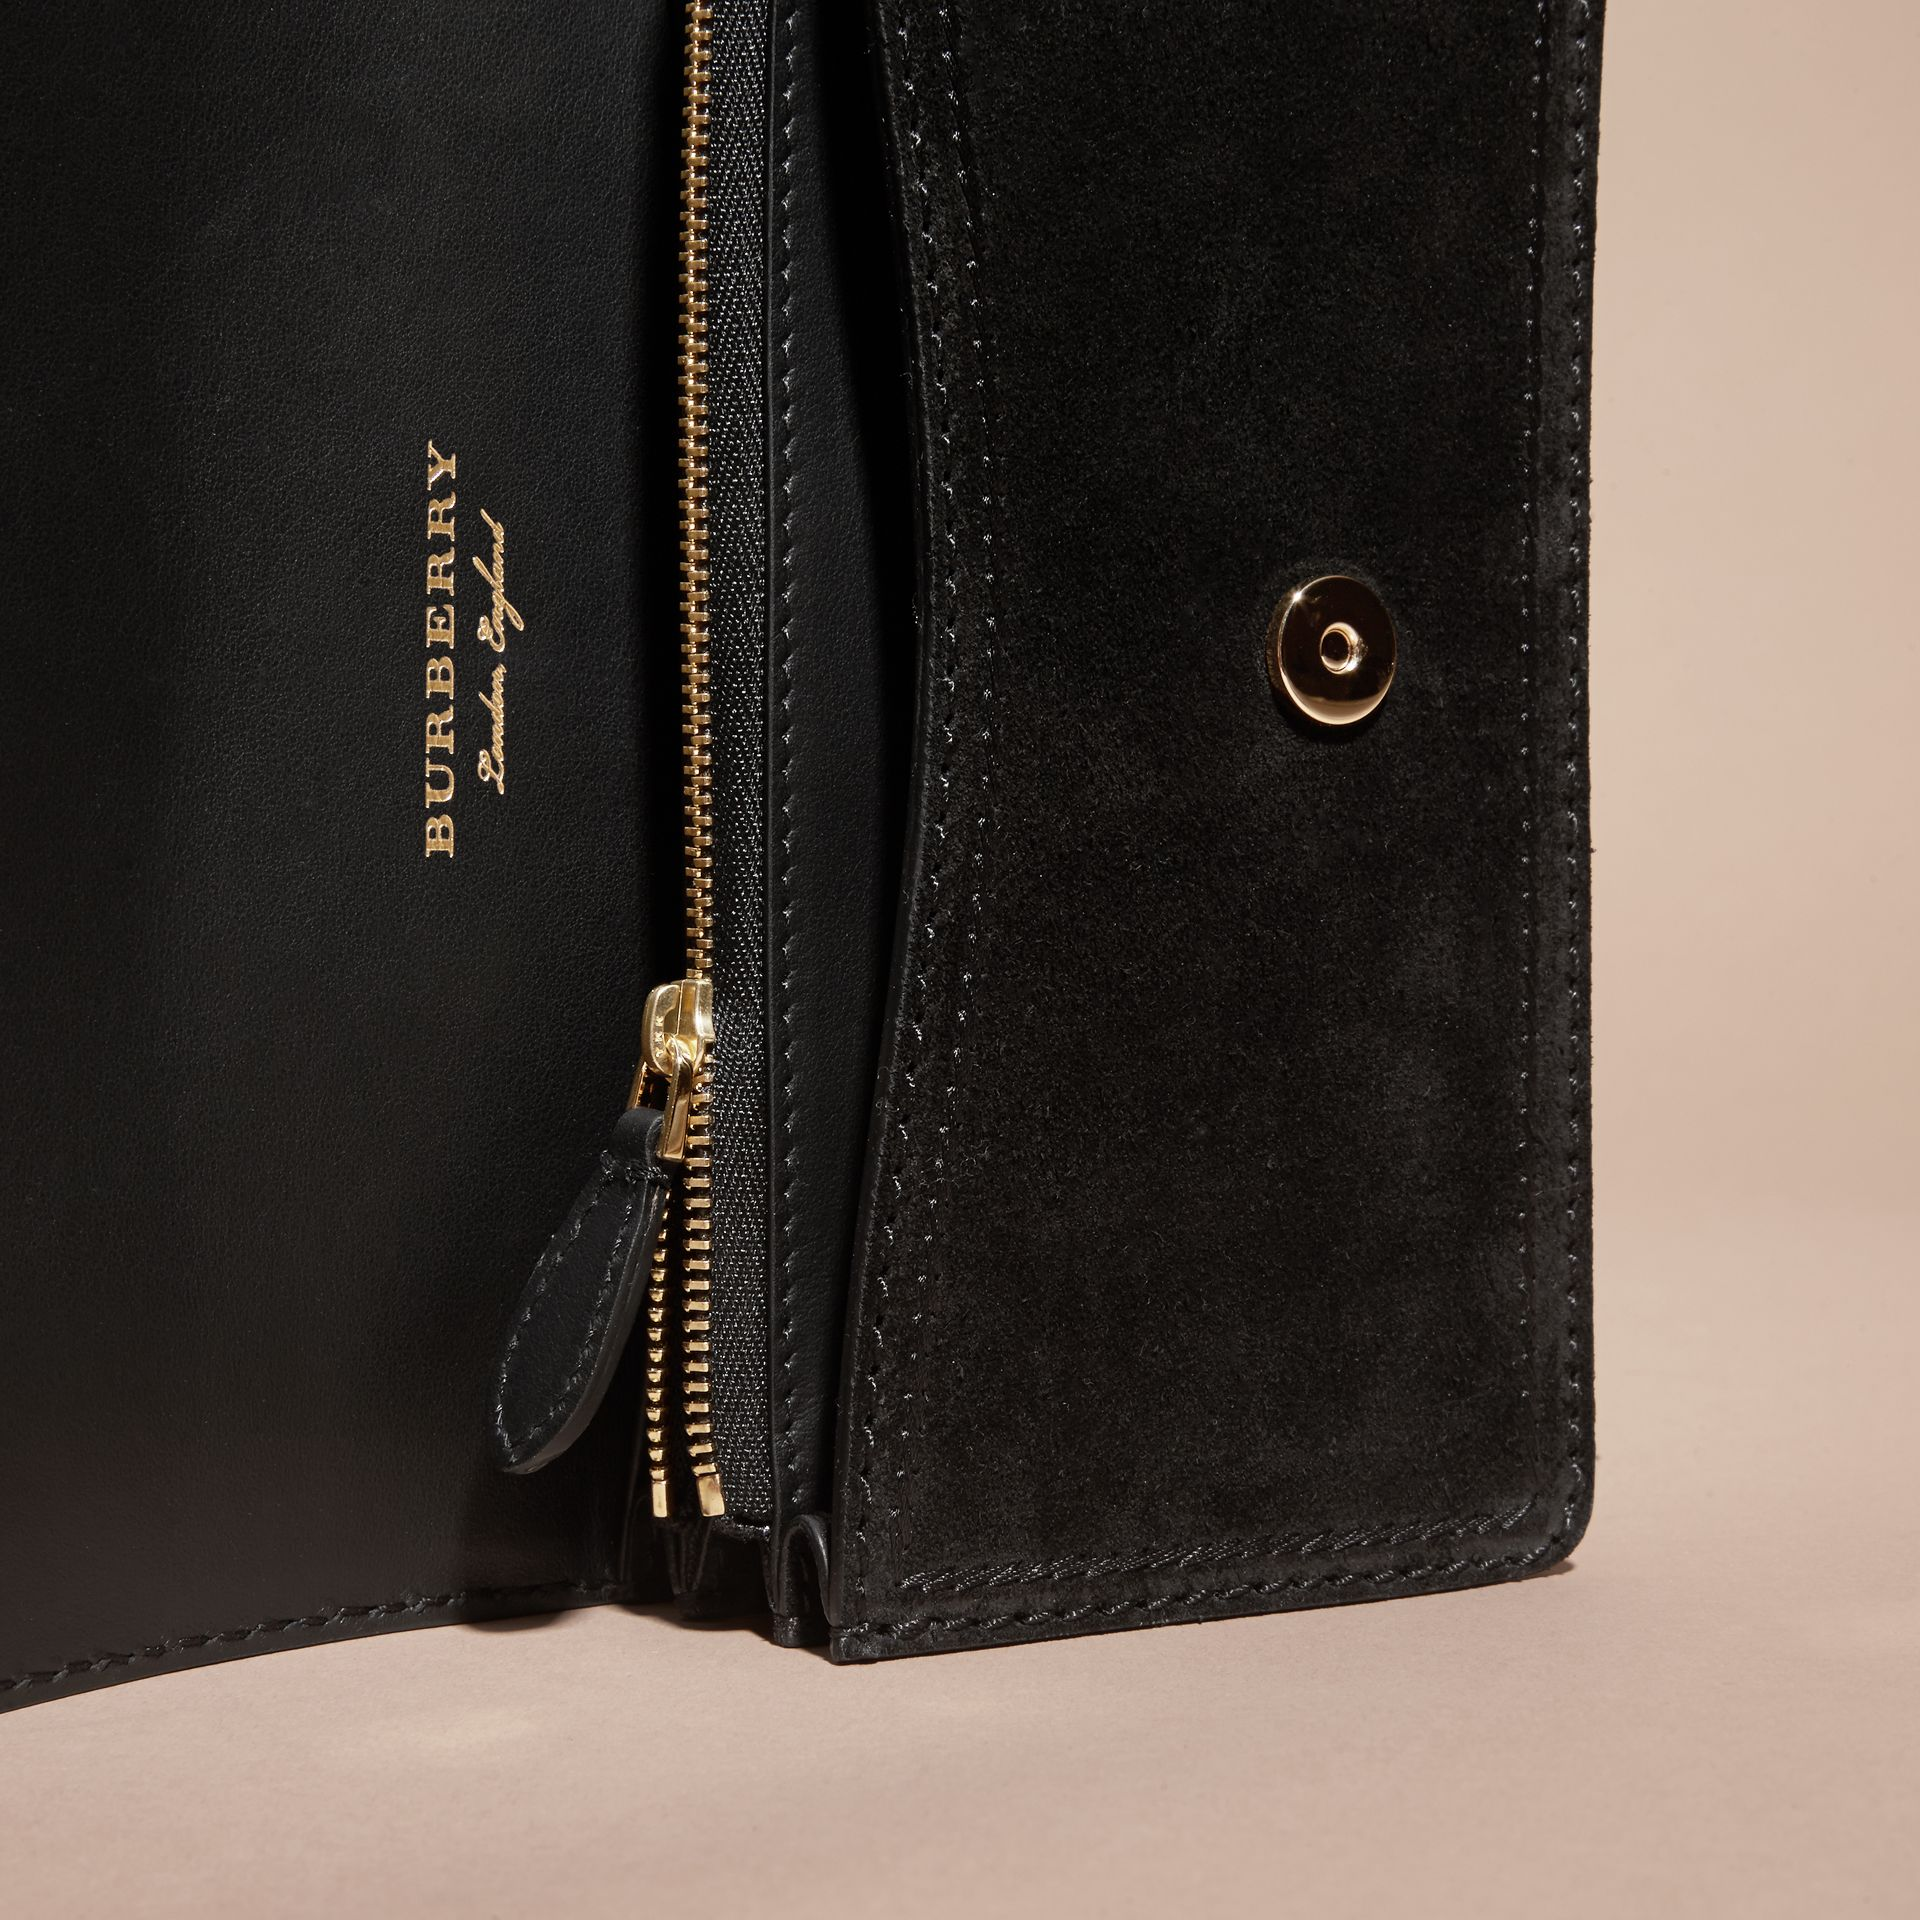 The Small Buckle Bag in Suede with Topstitching Black / Tan - gallery image 6